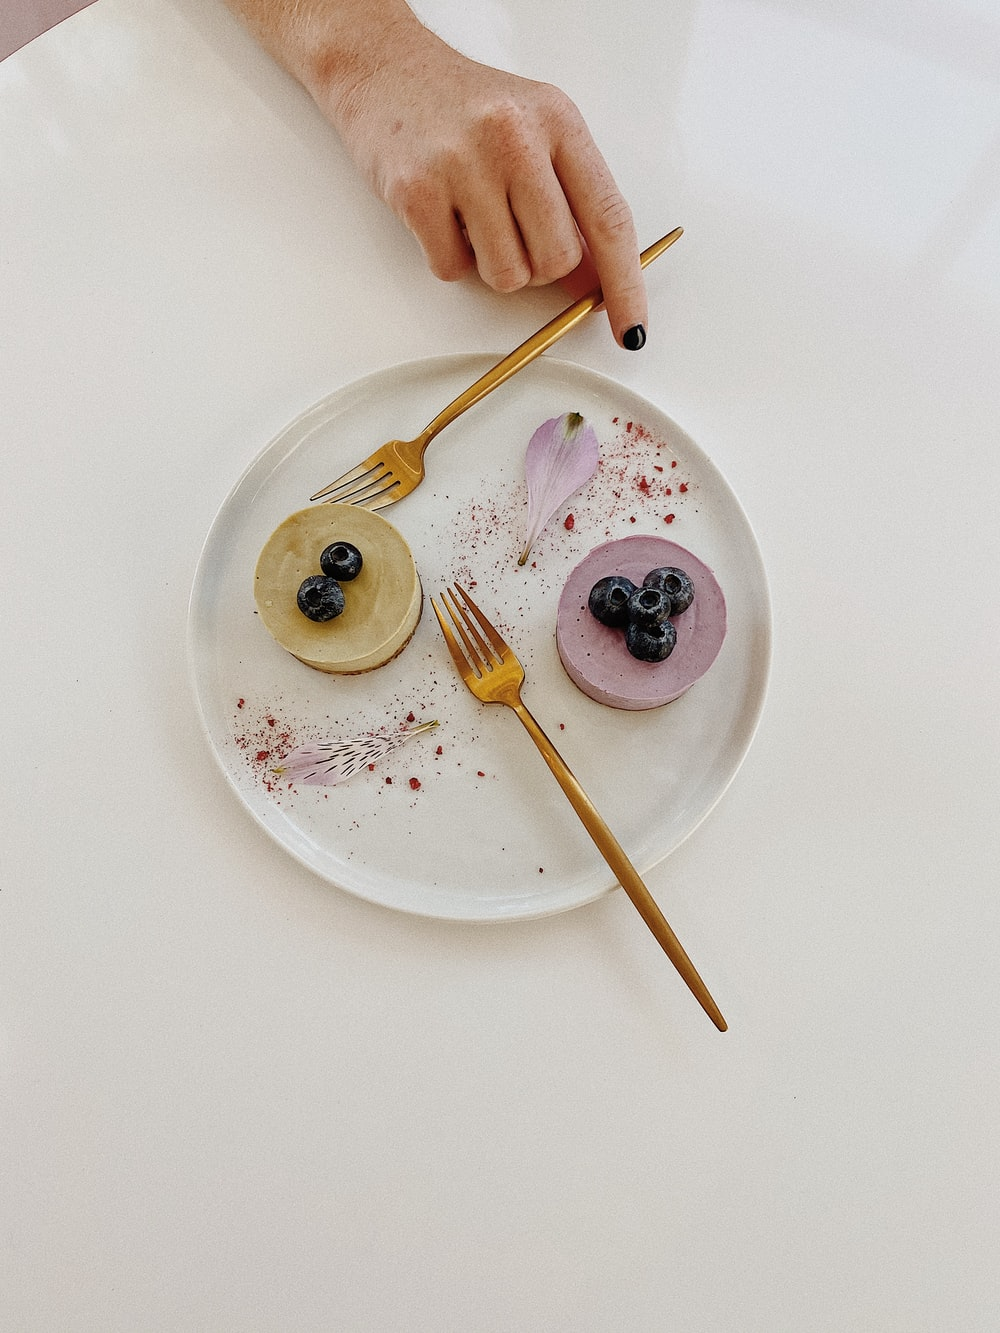 person holding fork on white ceramic plate